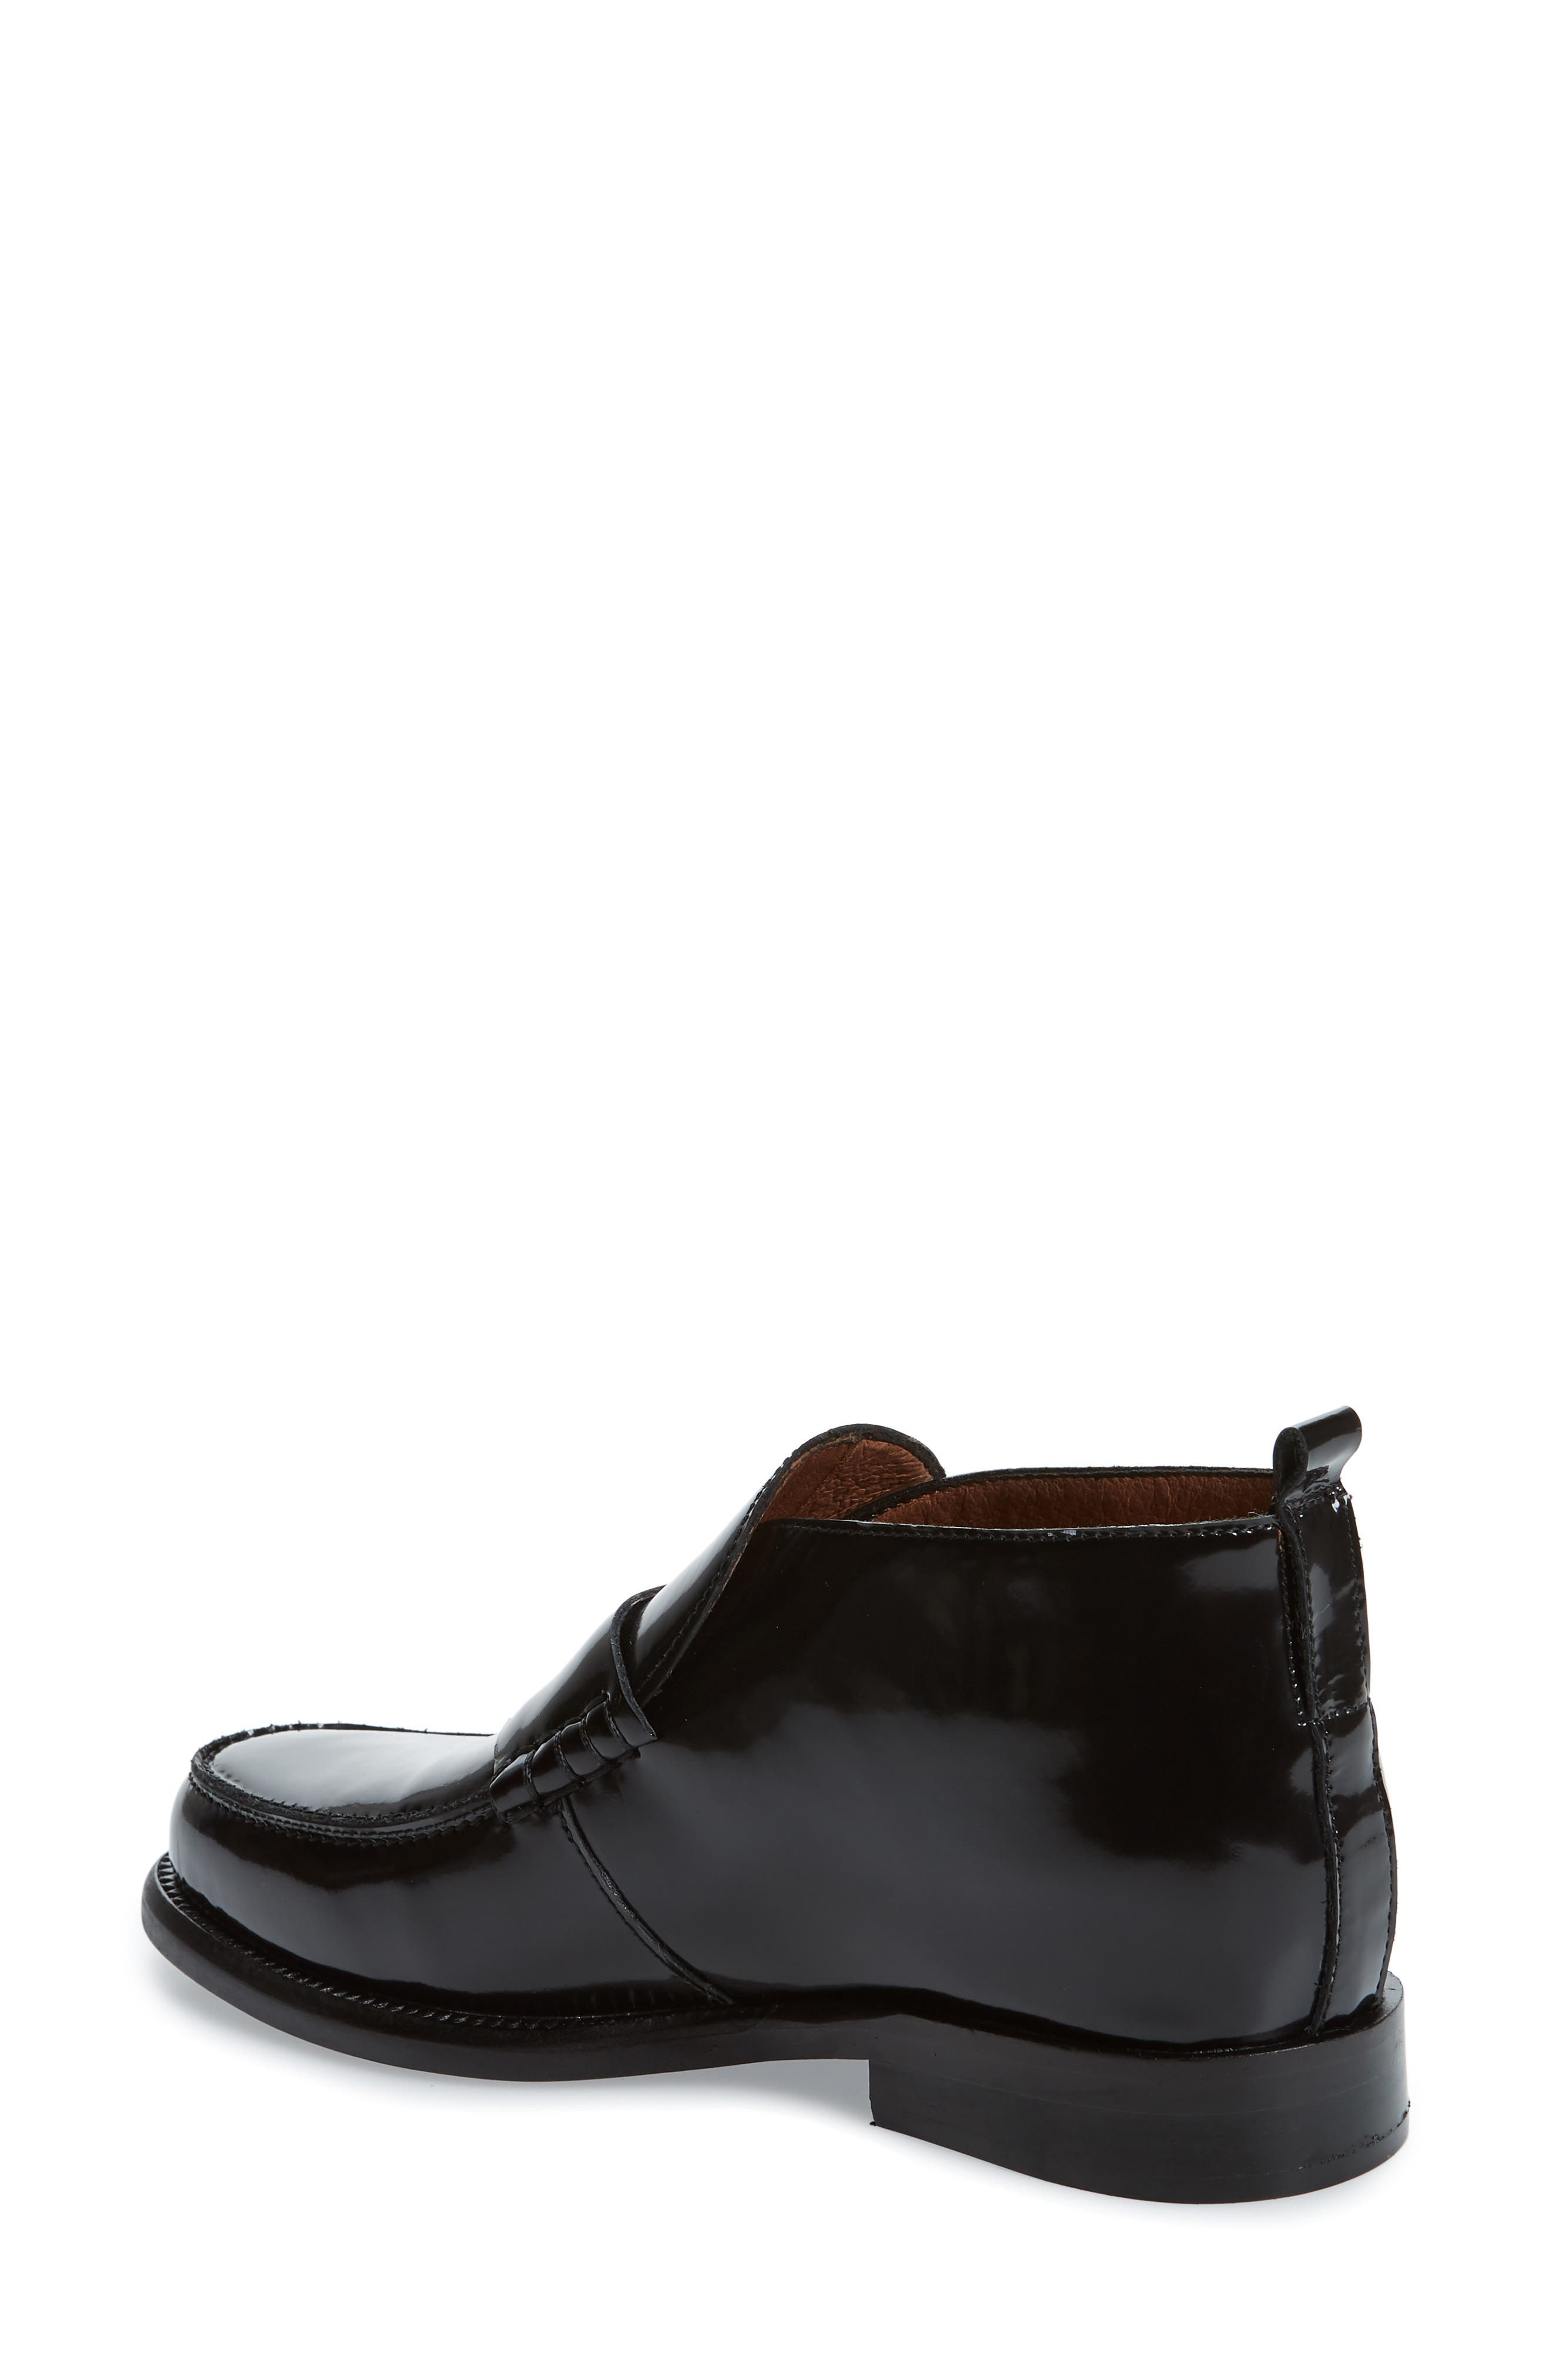 JEFFREY CAMPBELL, Marquis Loafer, Alternate thumbnail 2, color, BLACK LEATHER